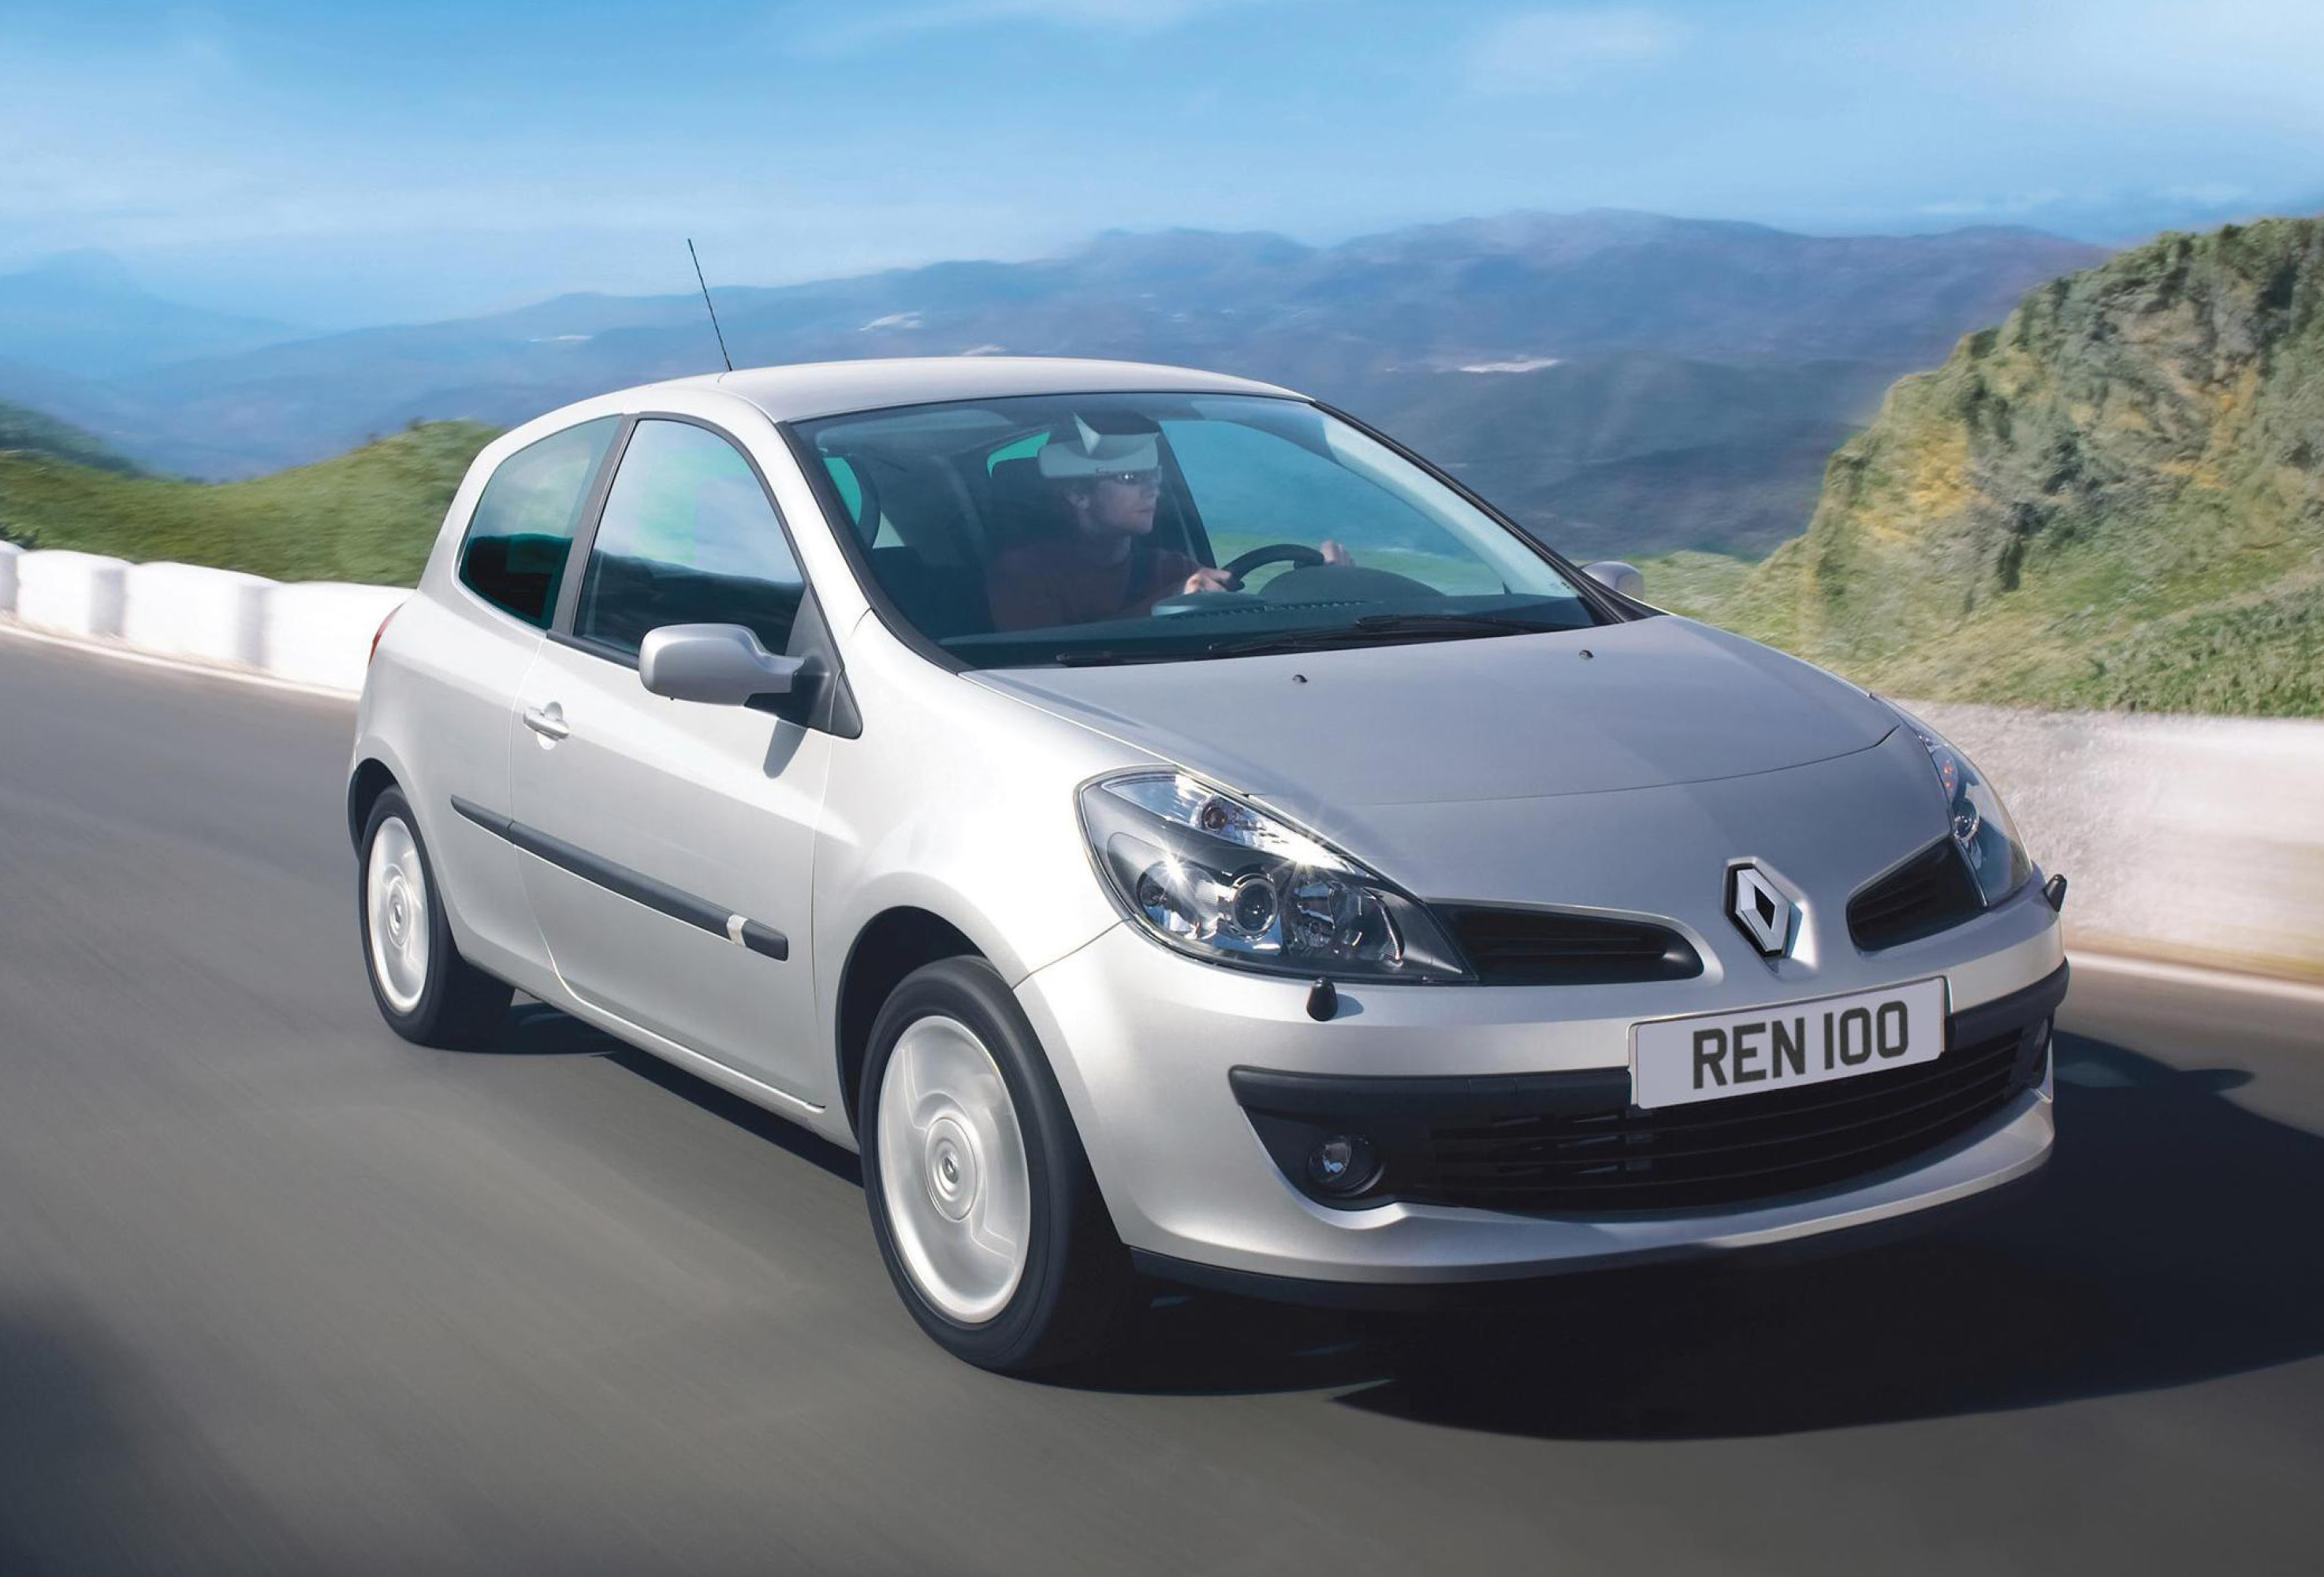 The Clio is great value and incredibly popular